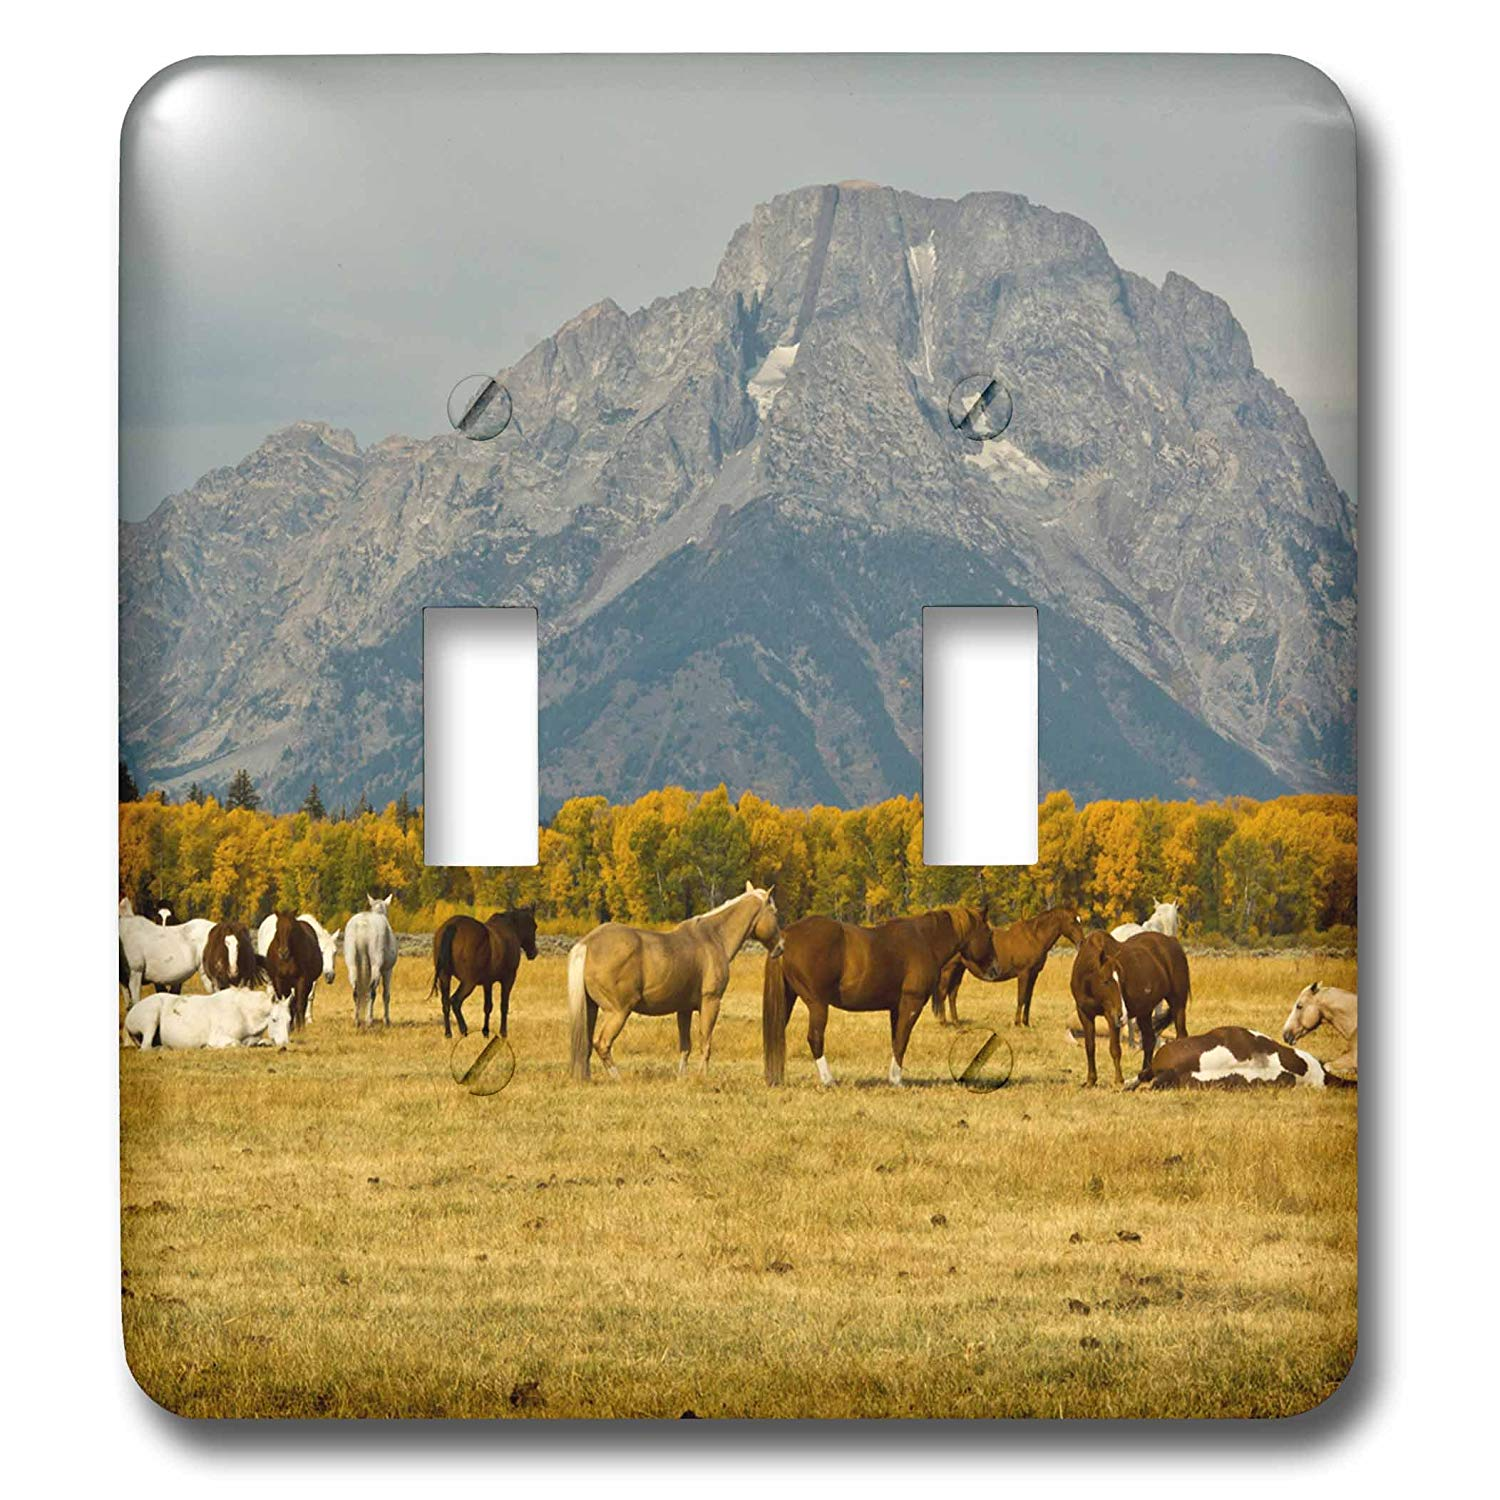 3dRose Danita Delimont - Horses - Horses, Elk Ranch Flats, Grand Tetons, Grand Teton NP, Wyoming, USA - Light Switch Covers - double toggle switch (lsp_279827_2)